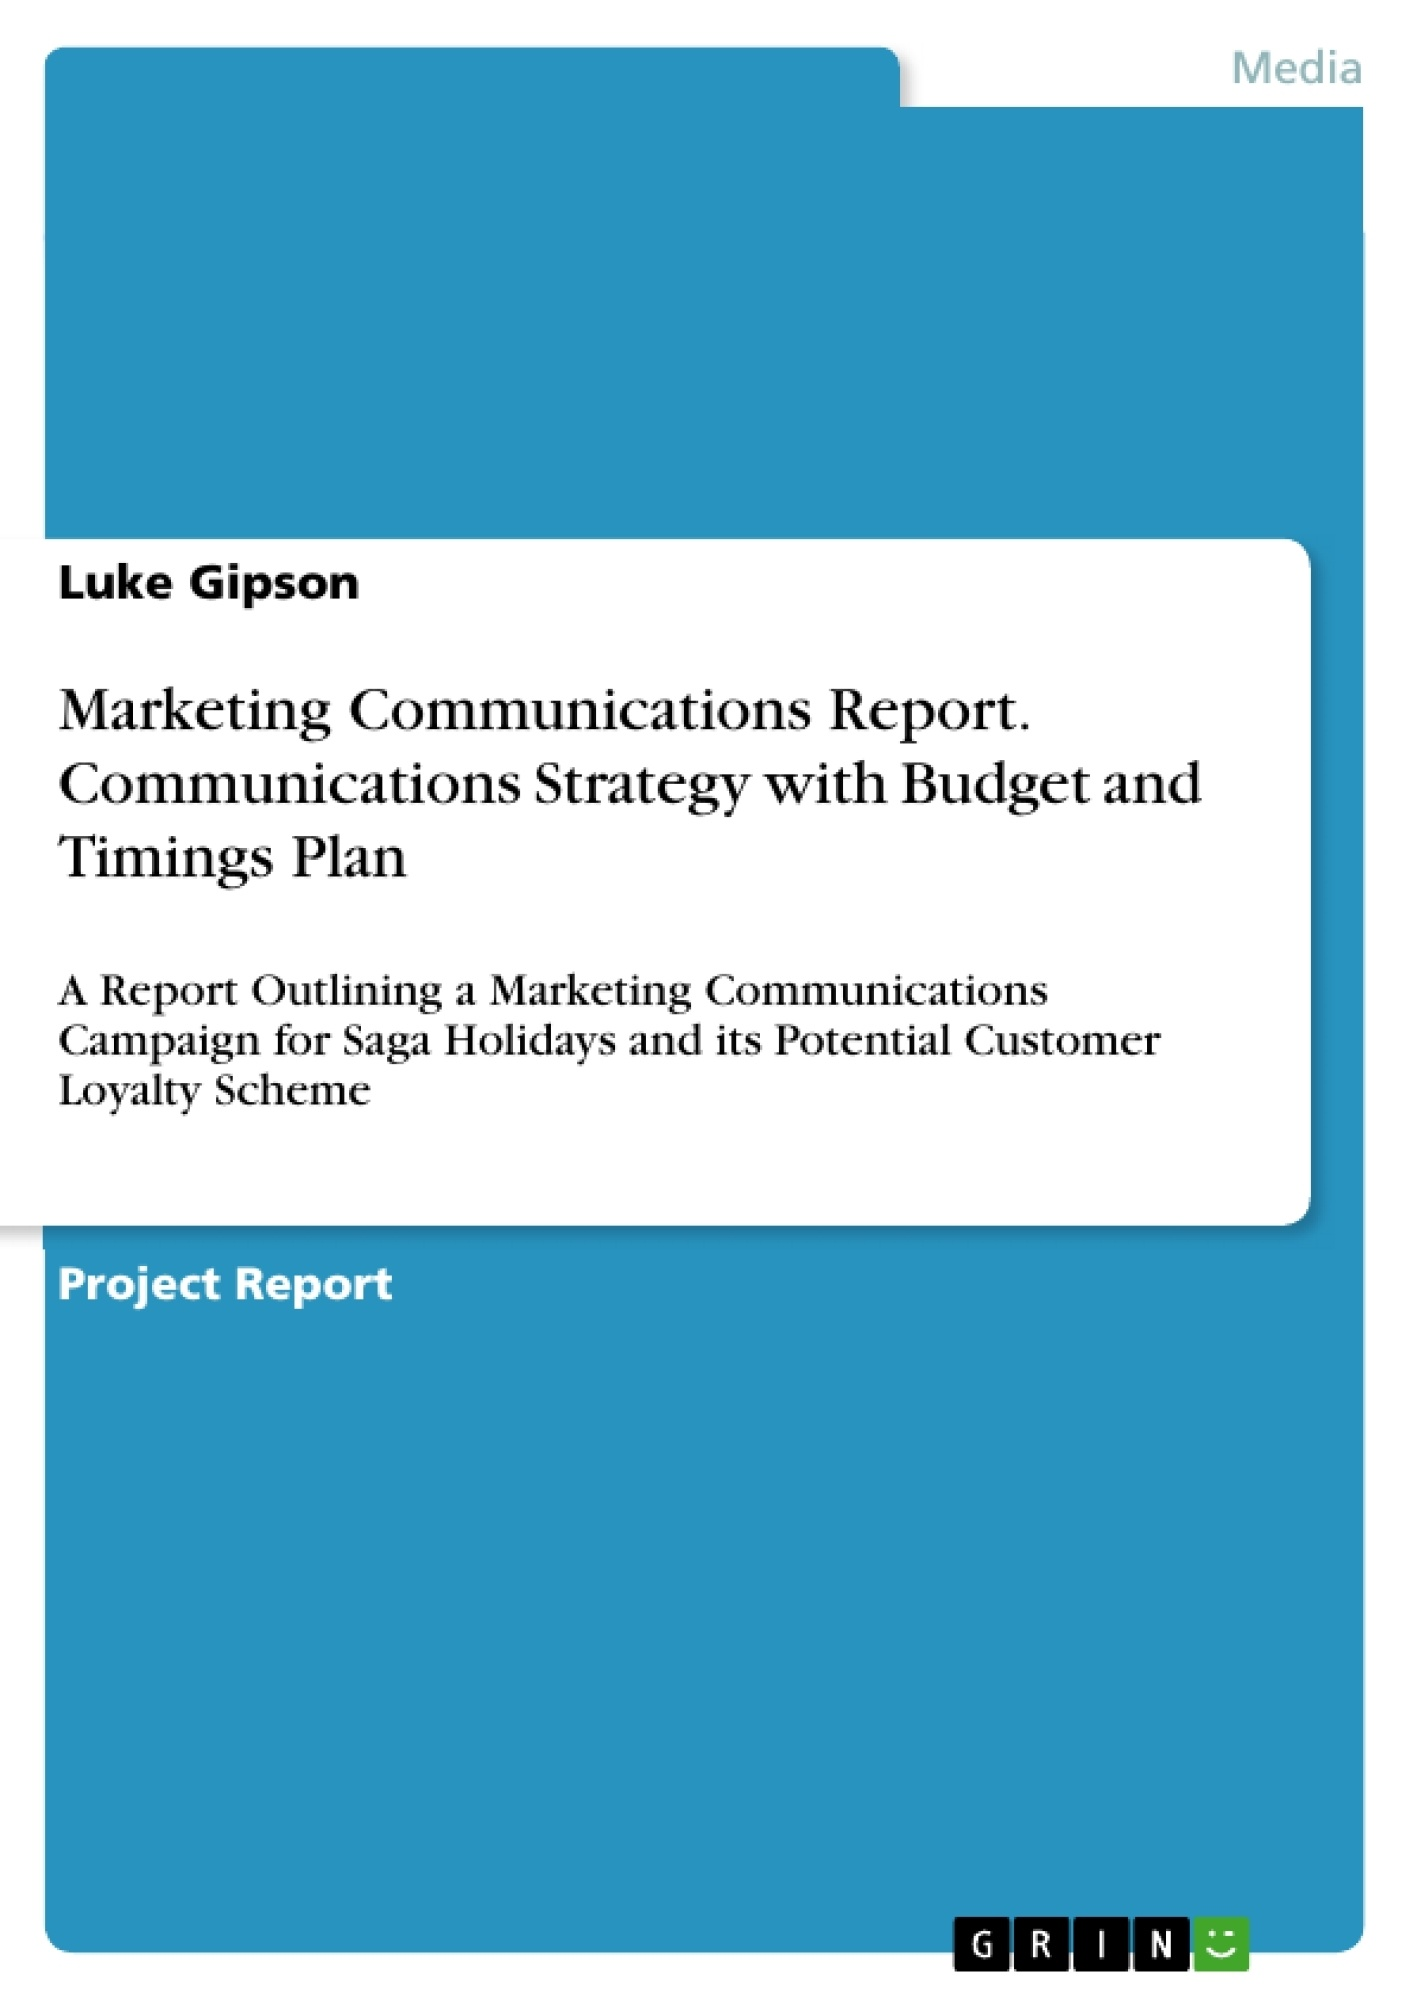 Research papers on corporate communication